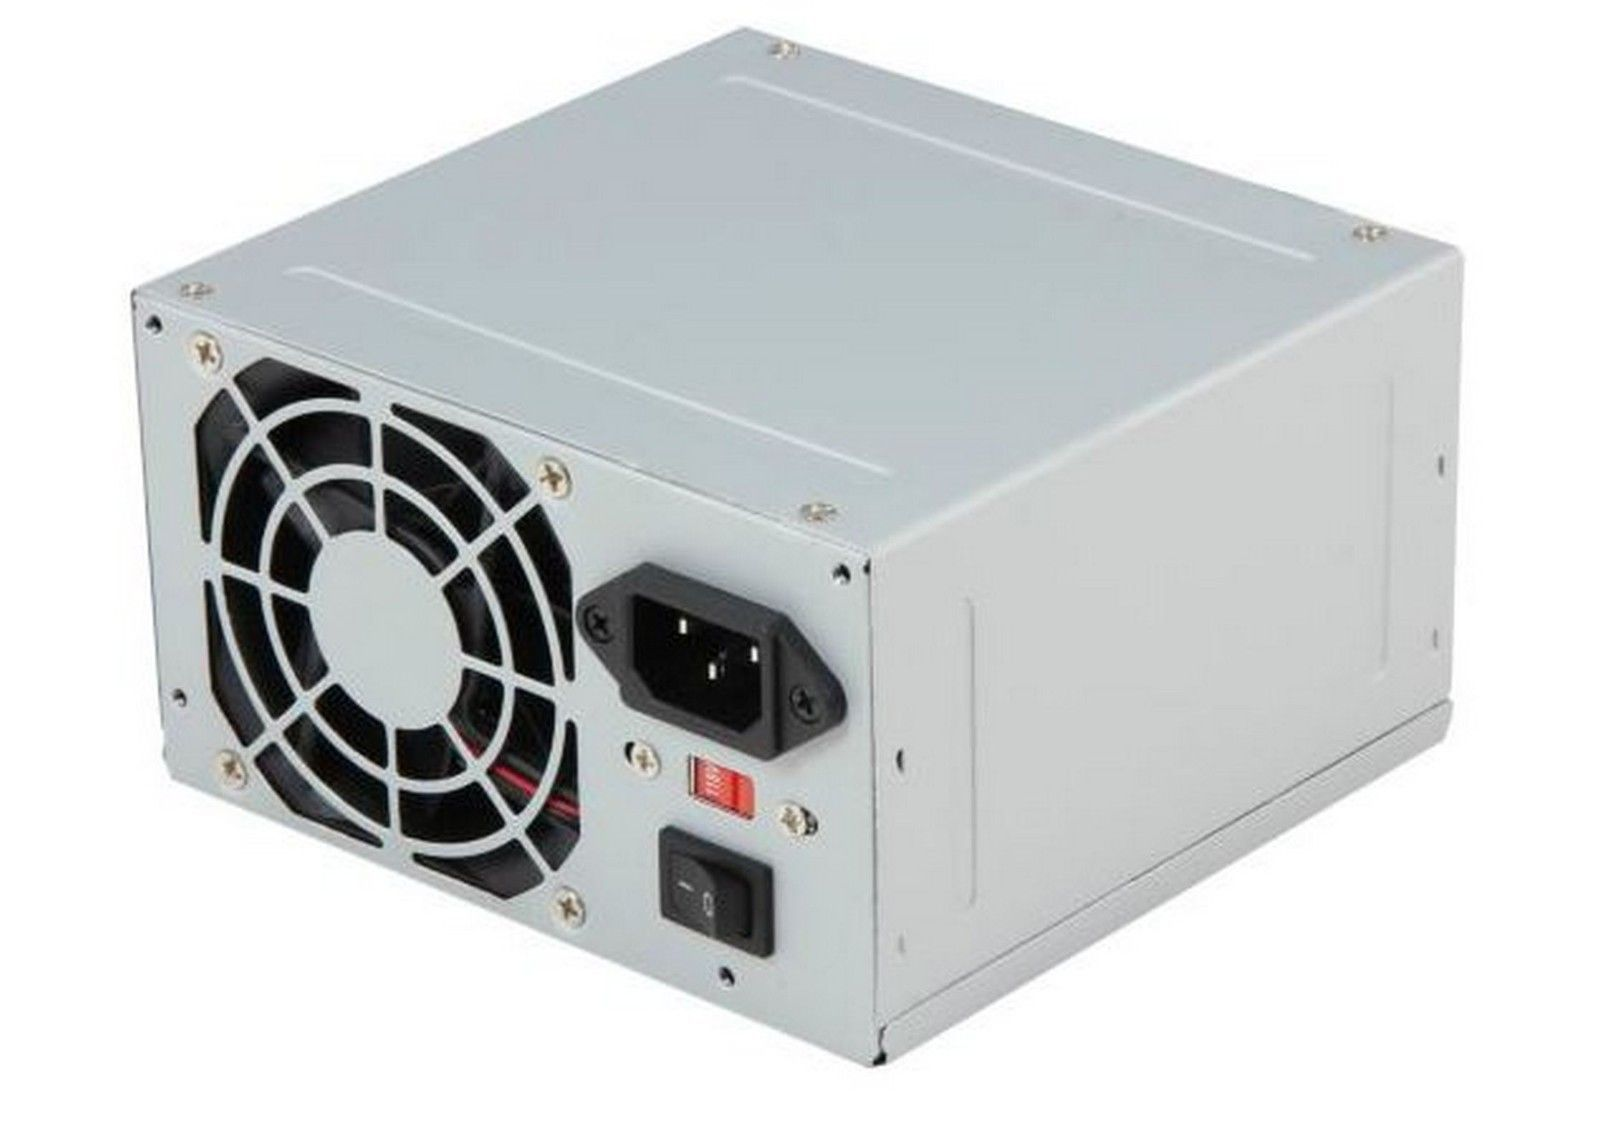 New PC Power Supply Upgrade for Gateway 3250X Computer  Free Shipping - $34.81